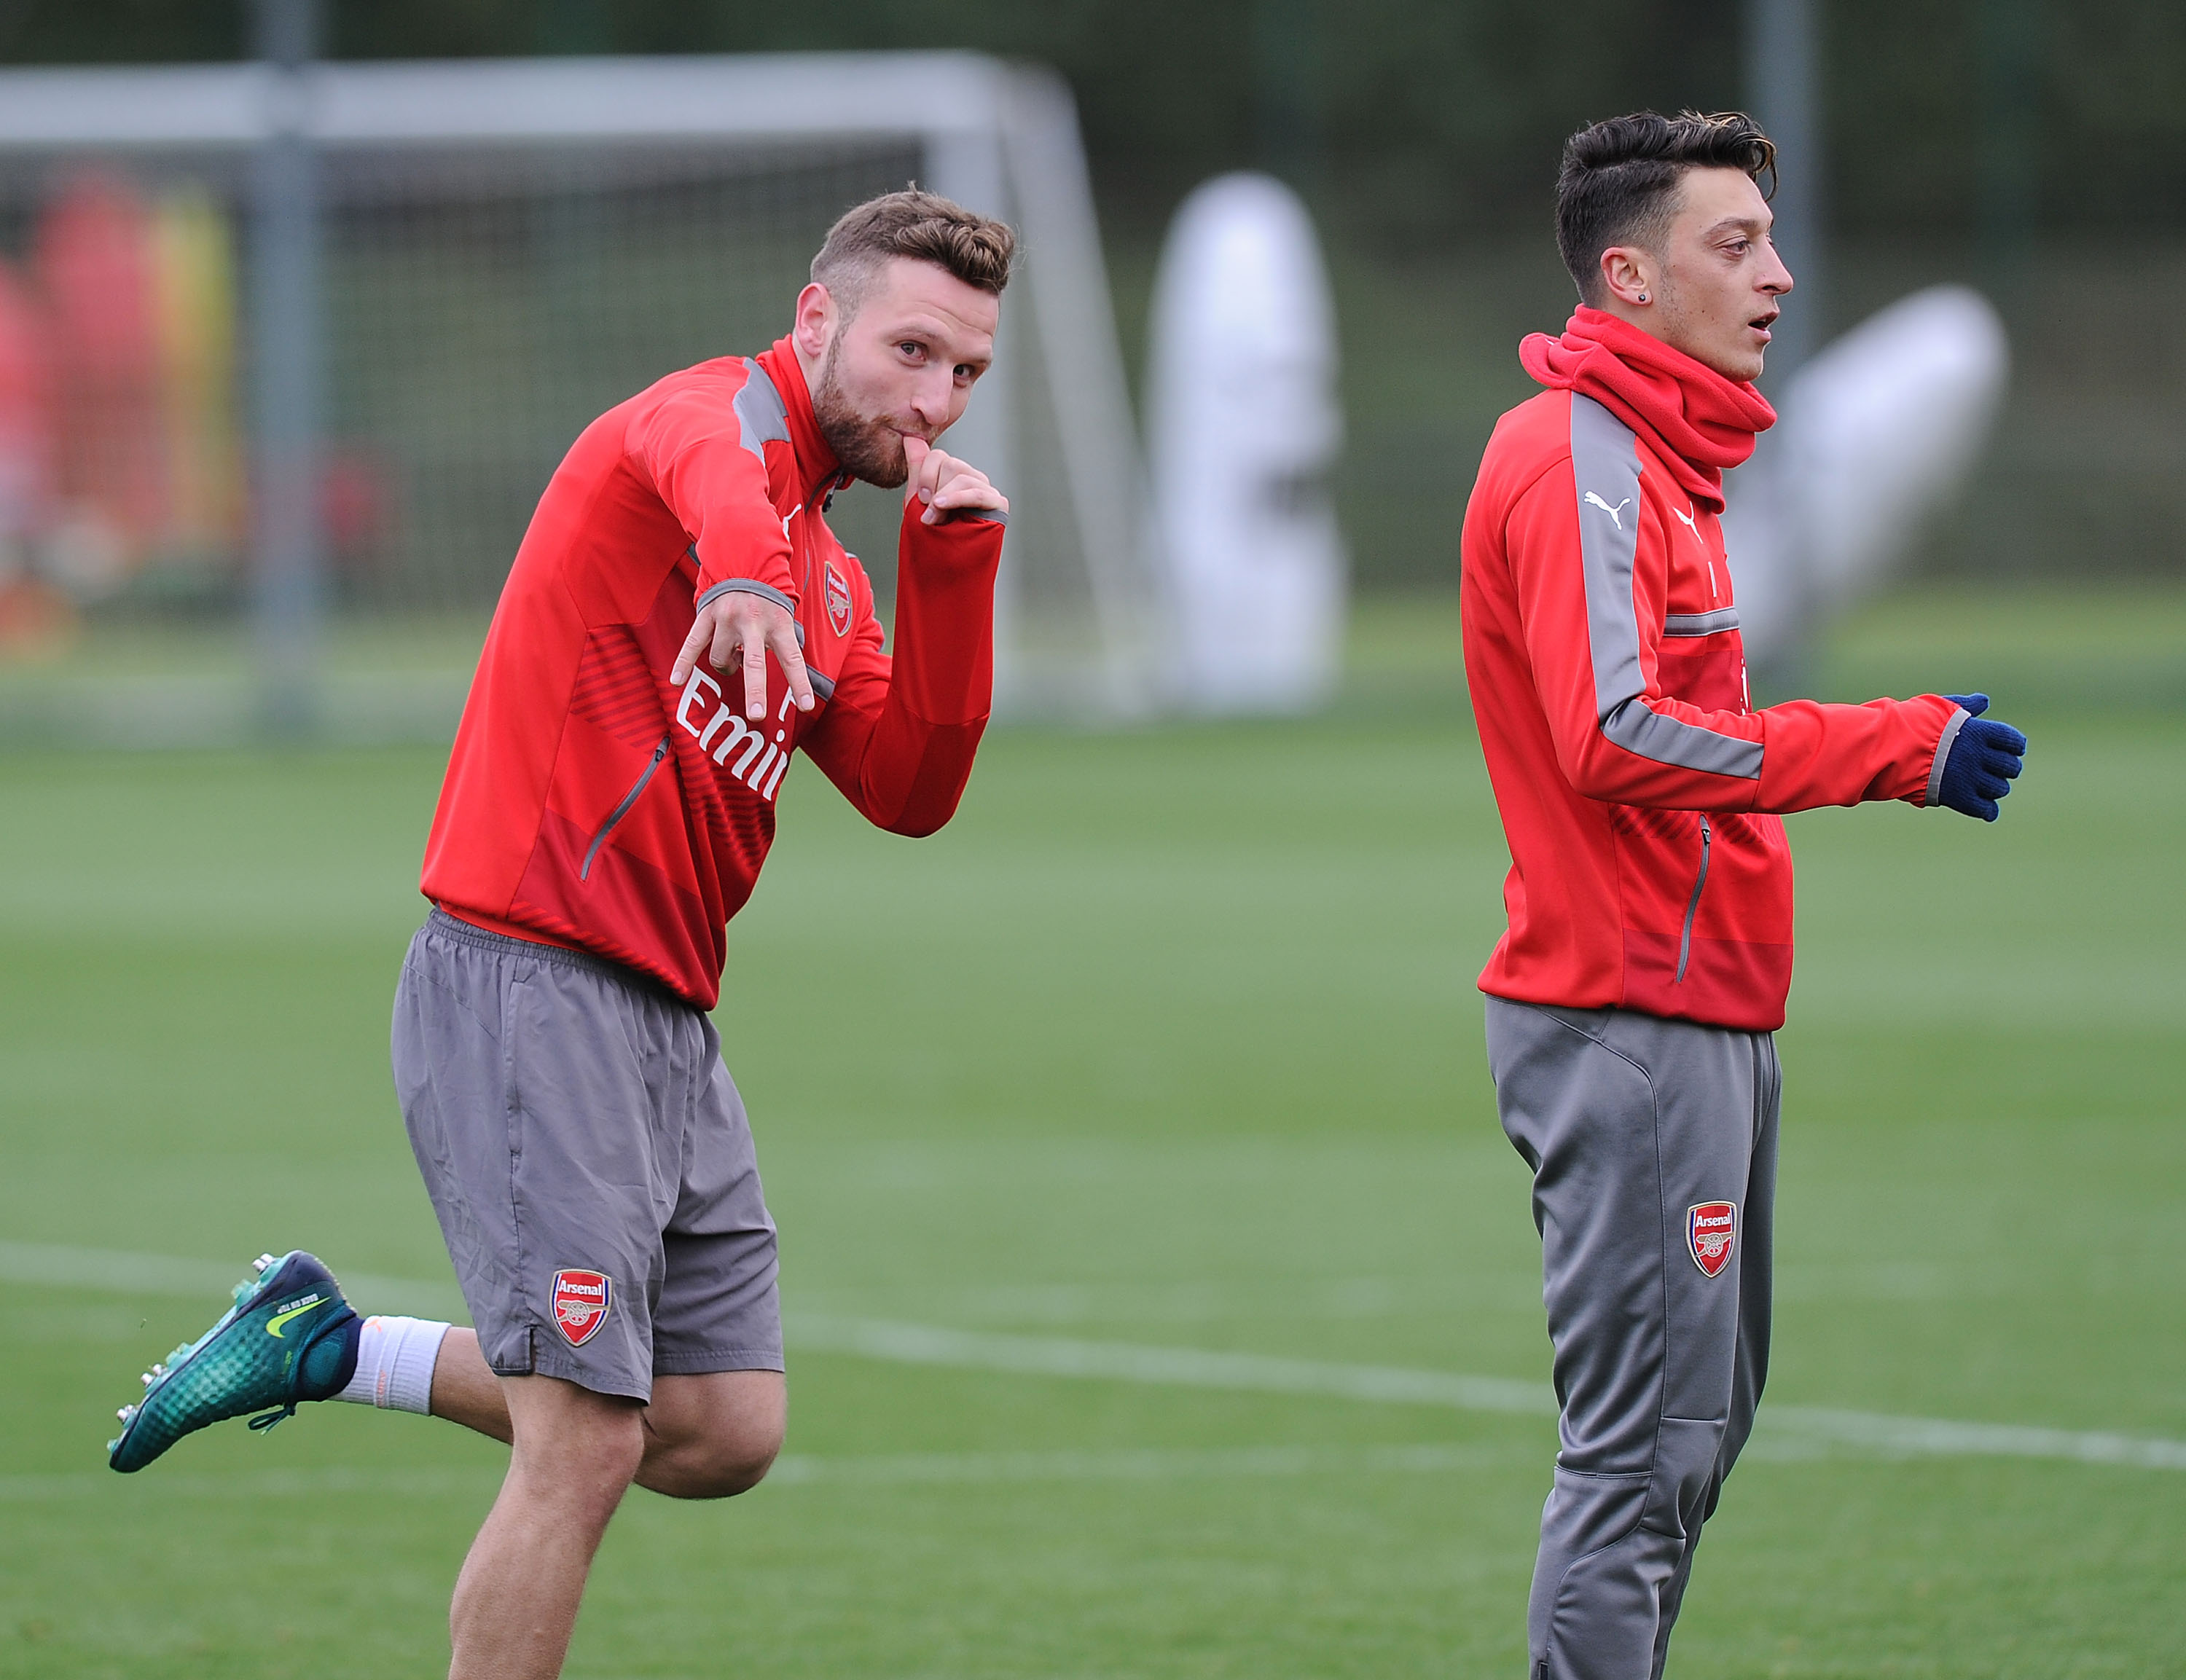 Shkodran Mustafi has the potential to become the complete defender at Arsenal, claims his former Valencia manager Gary Neville